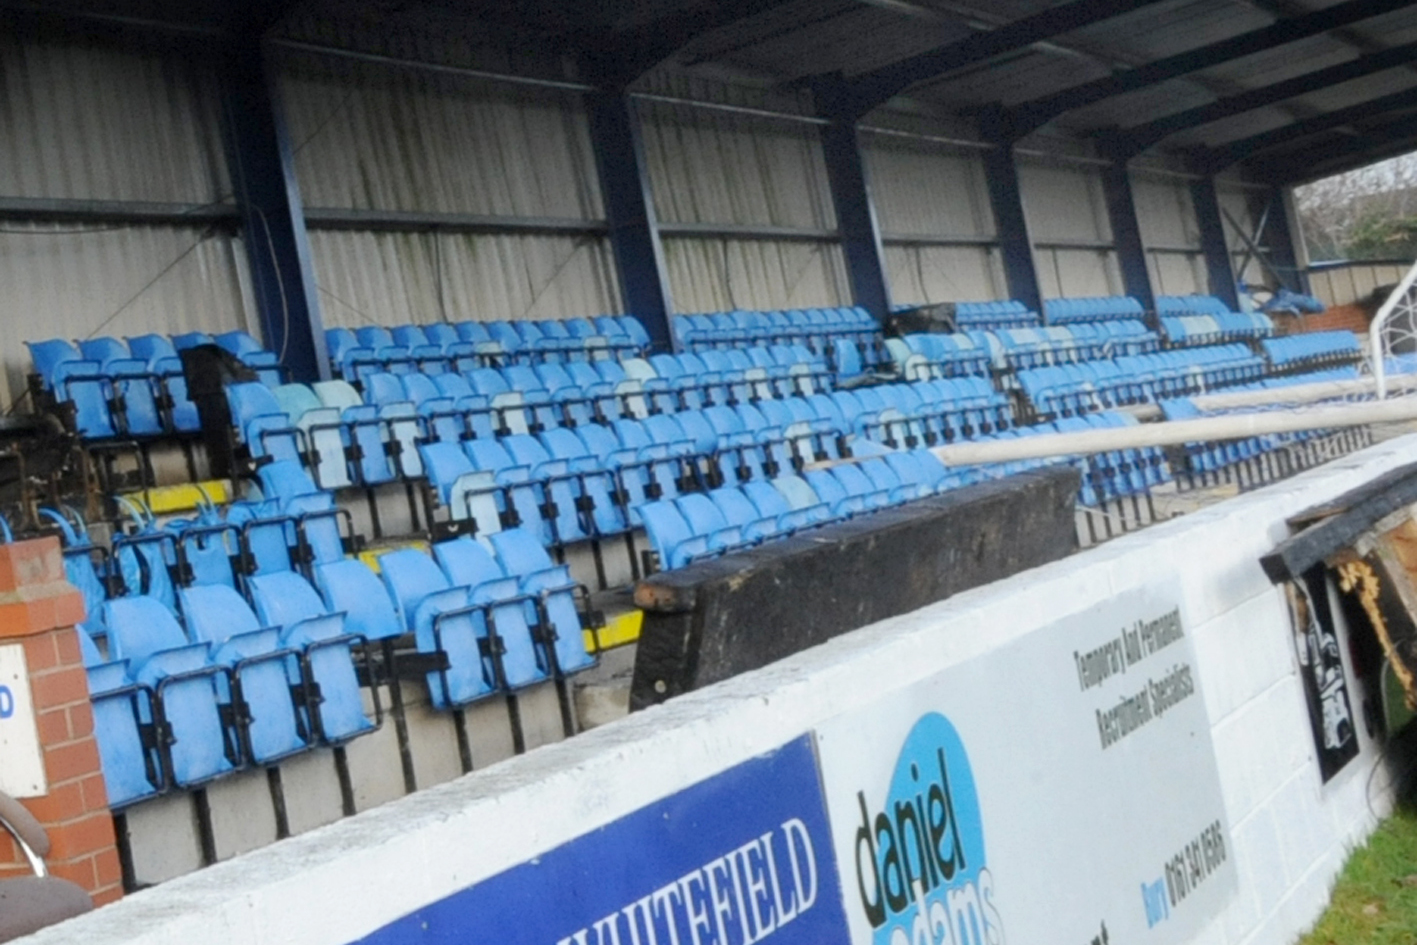 MP steps in to lobby FA over Bury AFC ground capacity headache